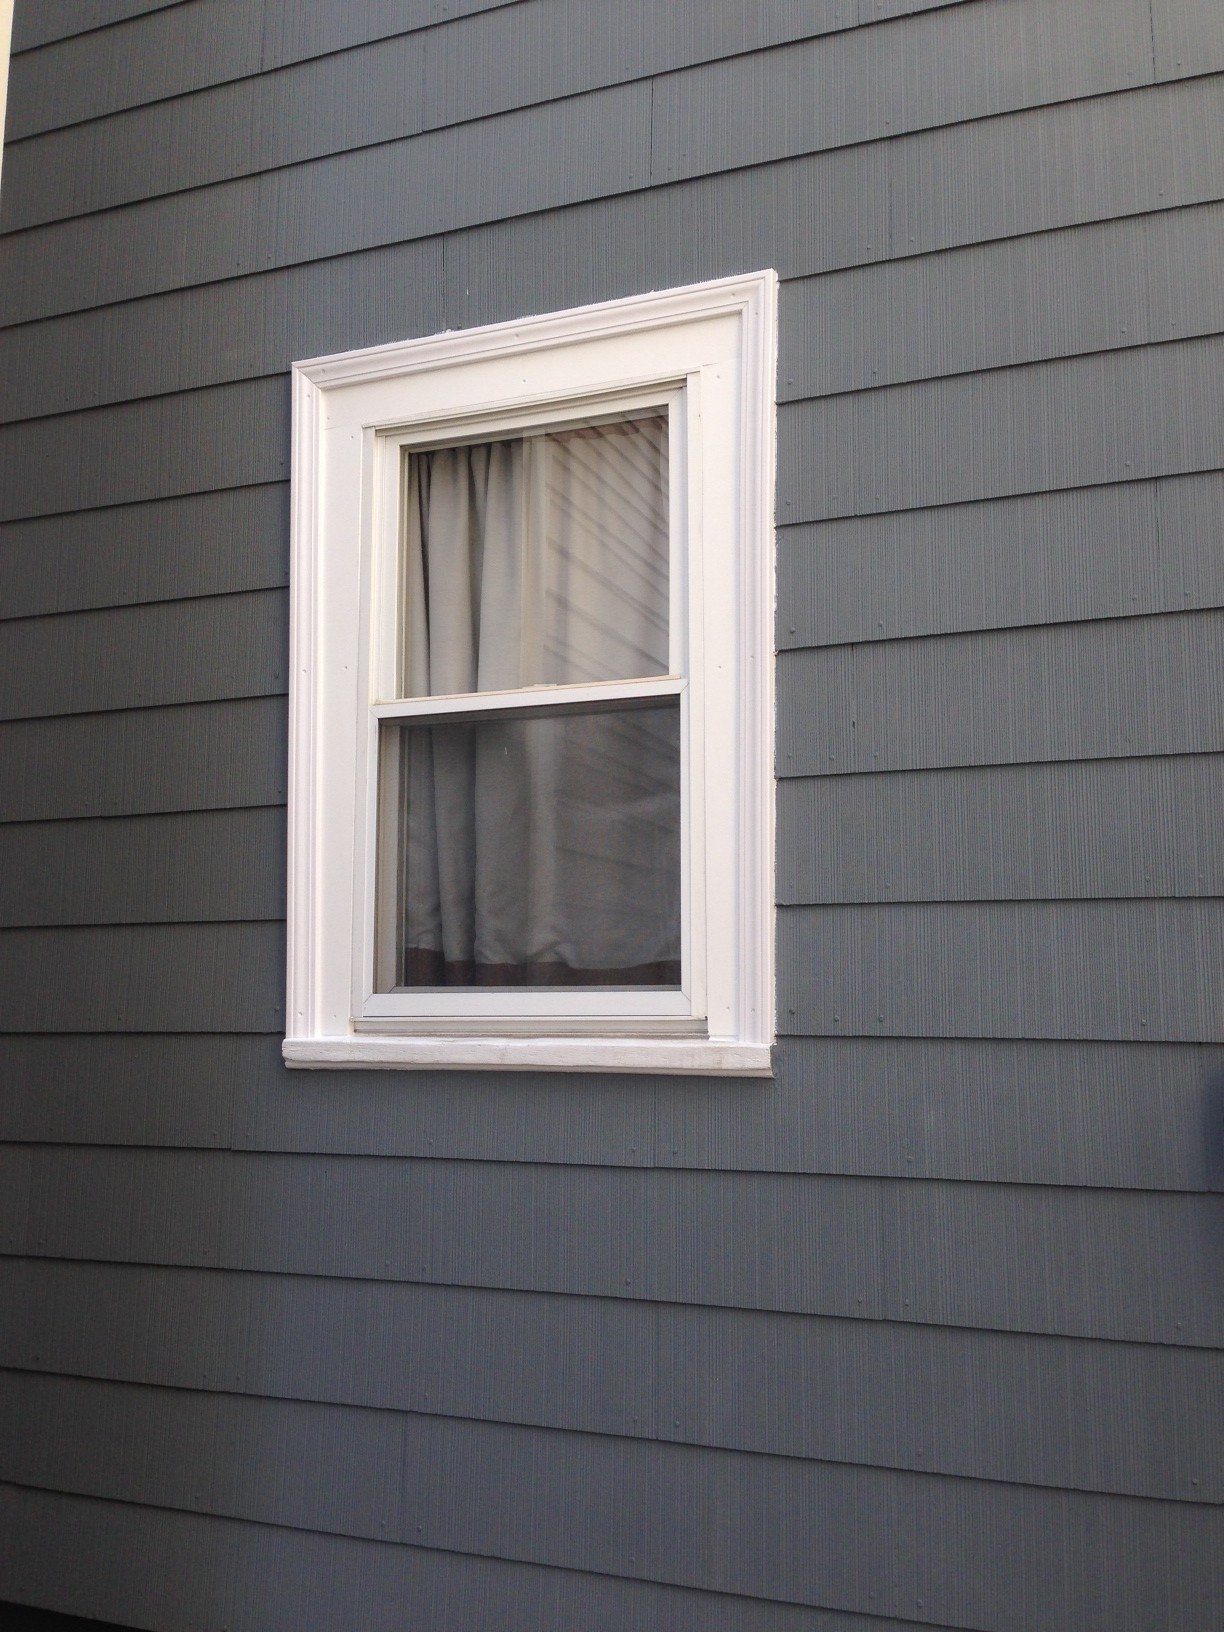 How to replace exterior window trim frugalwoods - What type of wood for exterior trim ...